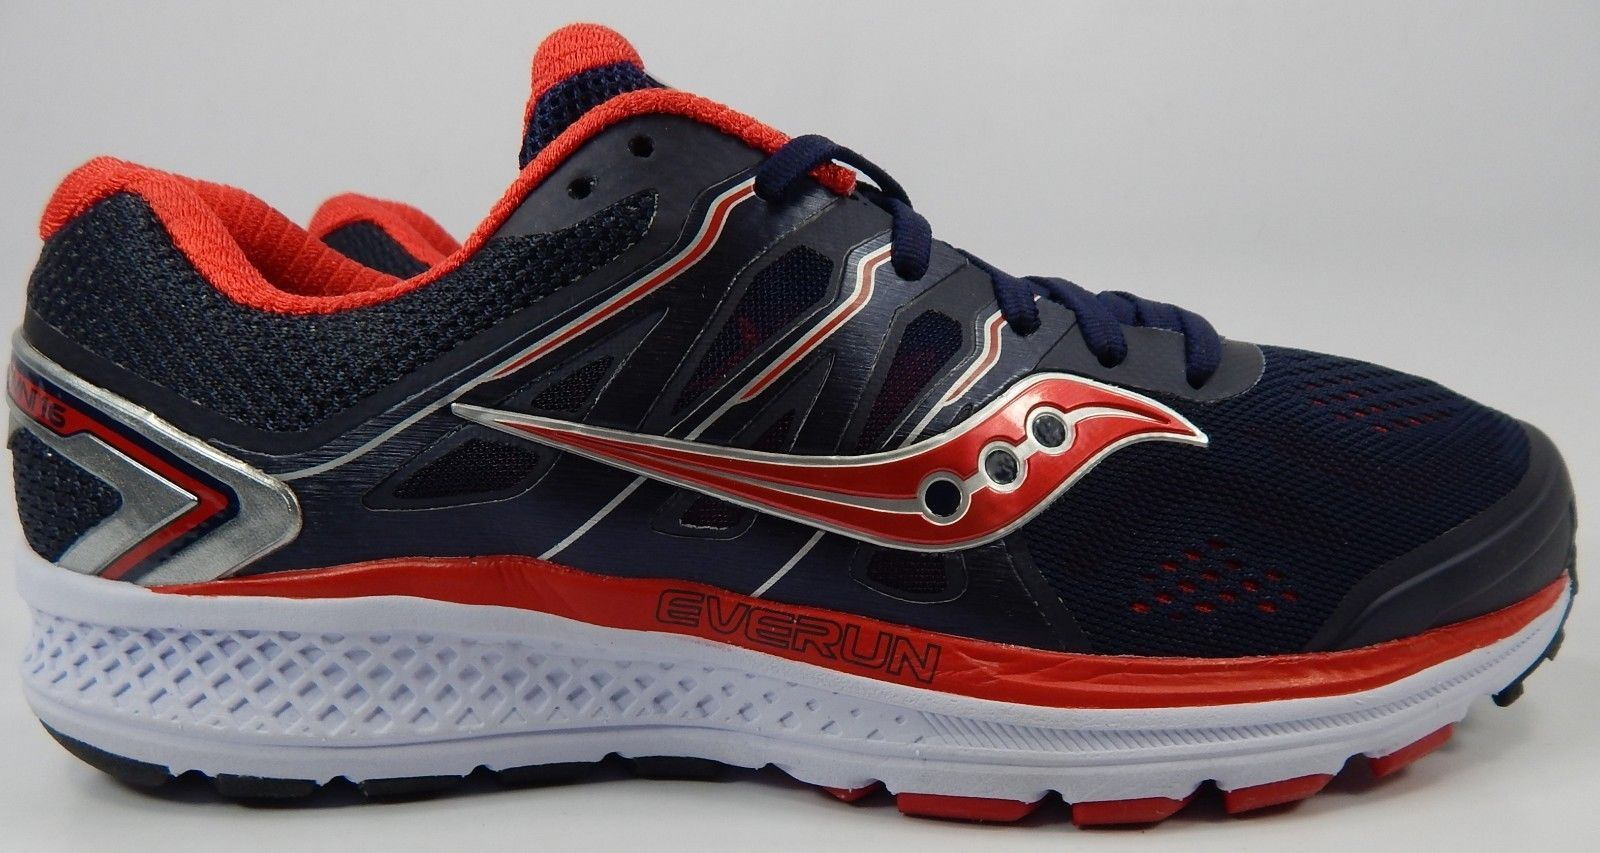 Saucony Omni 16 Size US 10 M (D) EU 44 Men's Running Shoes Blue Red S20370-2